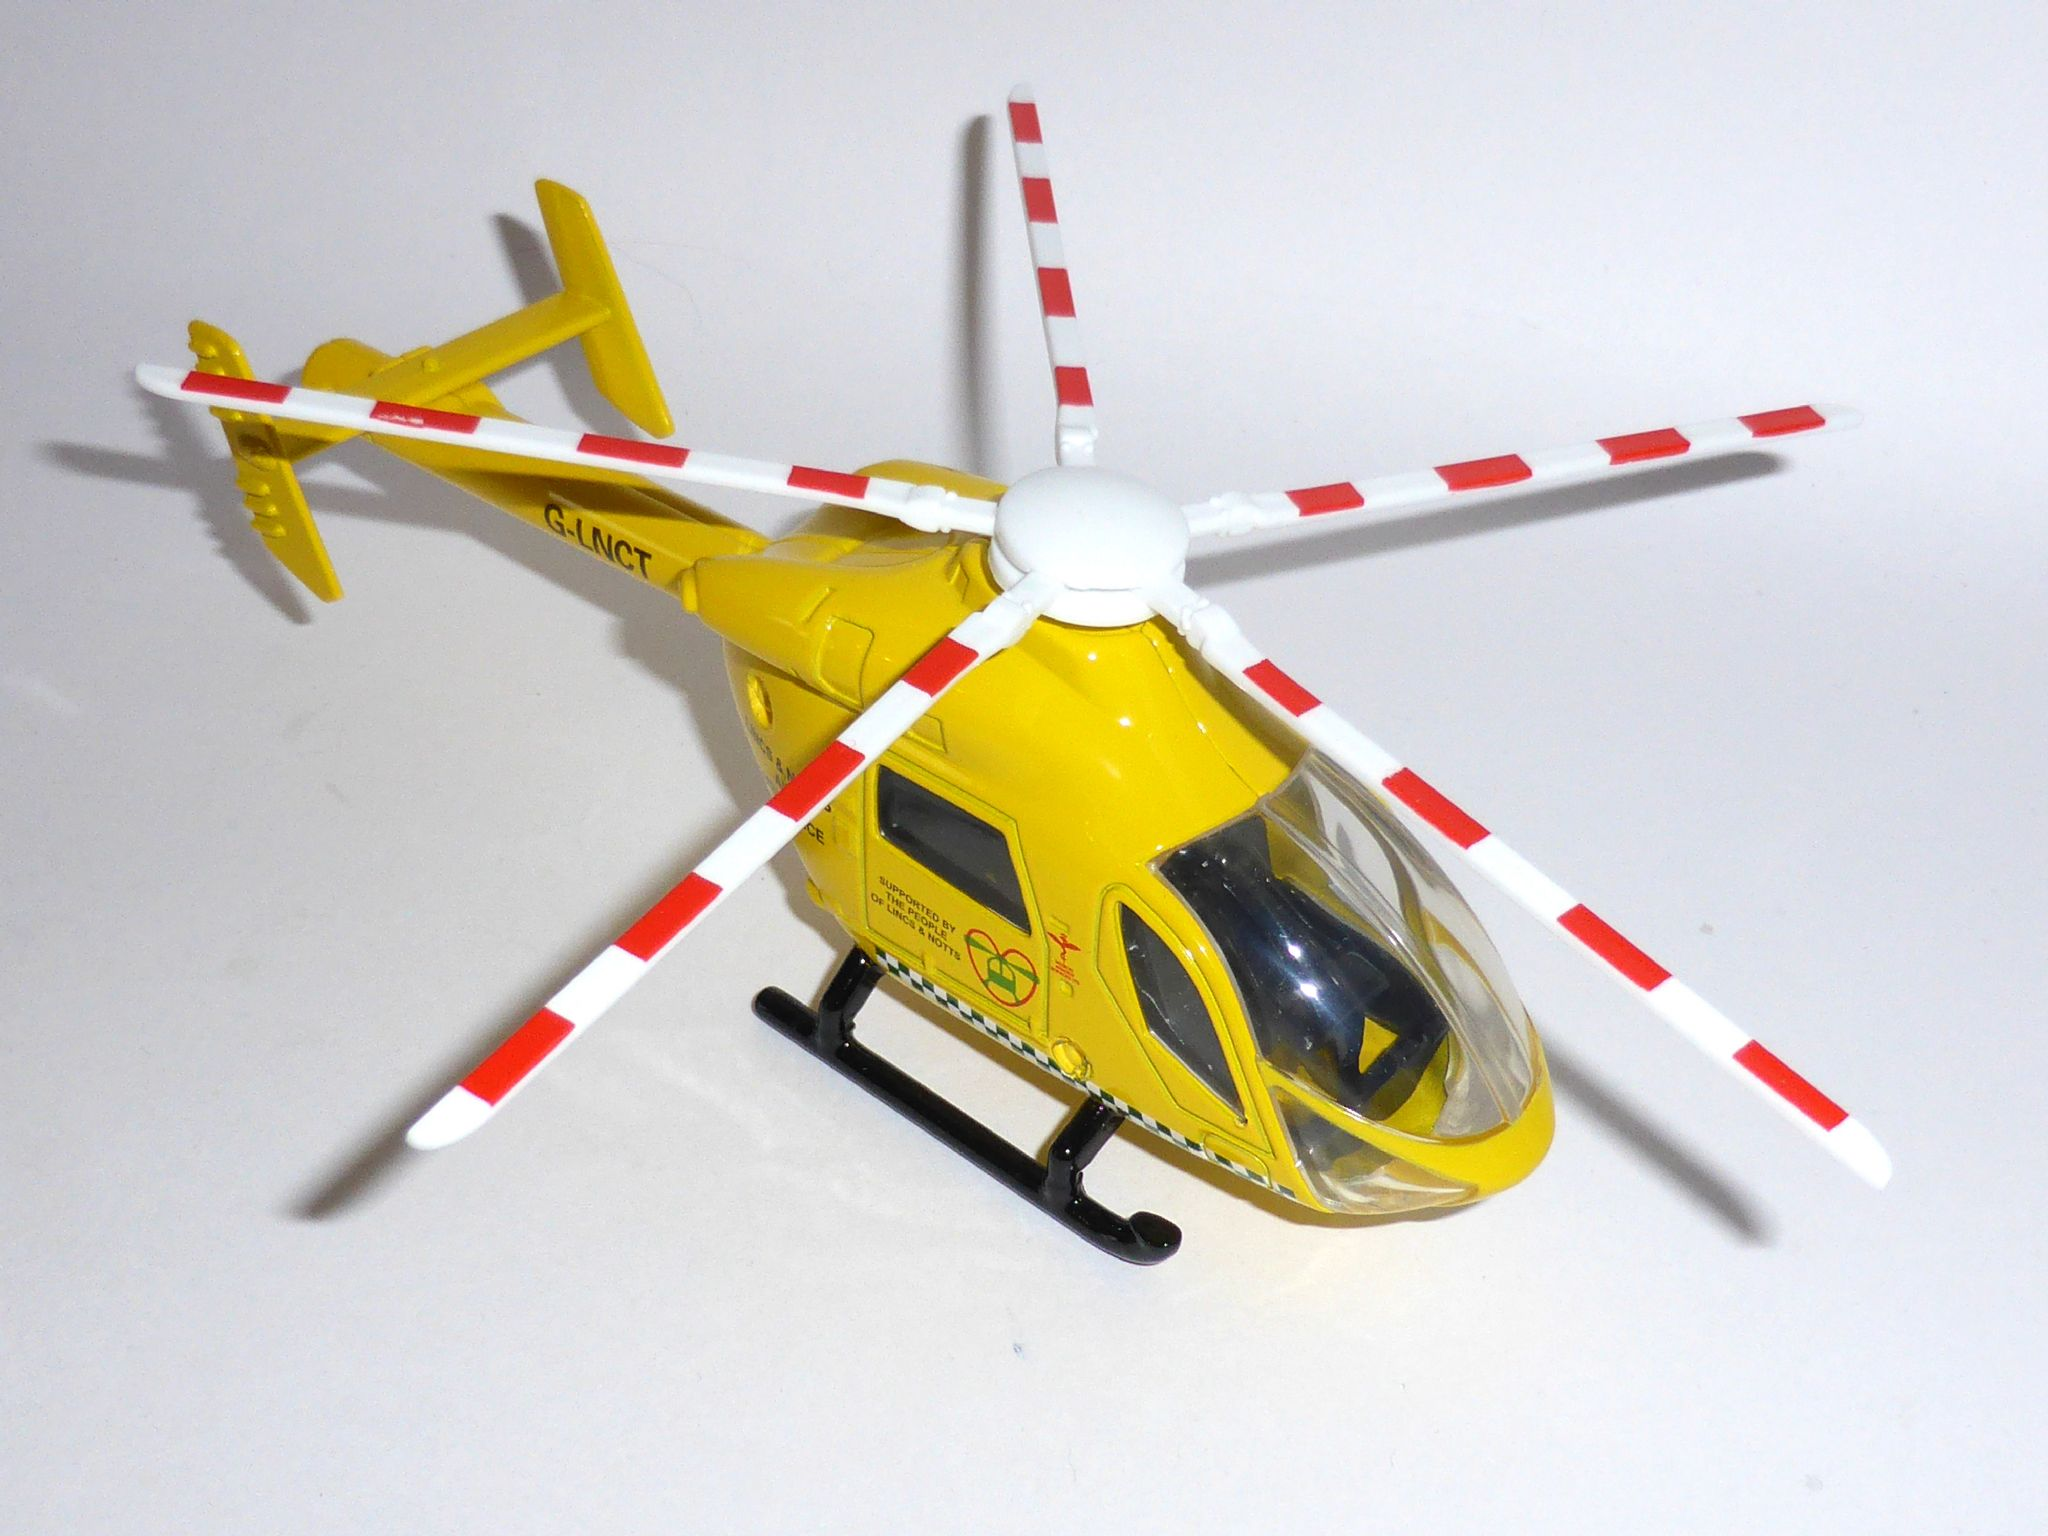 rc helicopter plane with Metal Model Helicopters O3n4bc 7cp6yh70p8gjfn Vpvedhk9 7clbjr4ae33ndak on Worlds Largest Aircraft furthermore Top 41 Most Beautiful And Most Dashing in addition Watch together with How To Fly A Drone Like A Pro furthermore Watch.